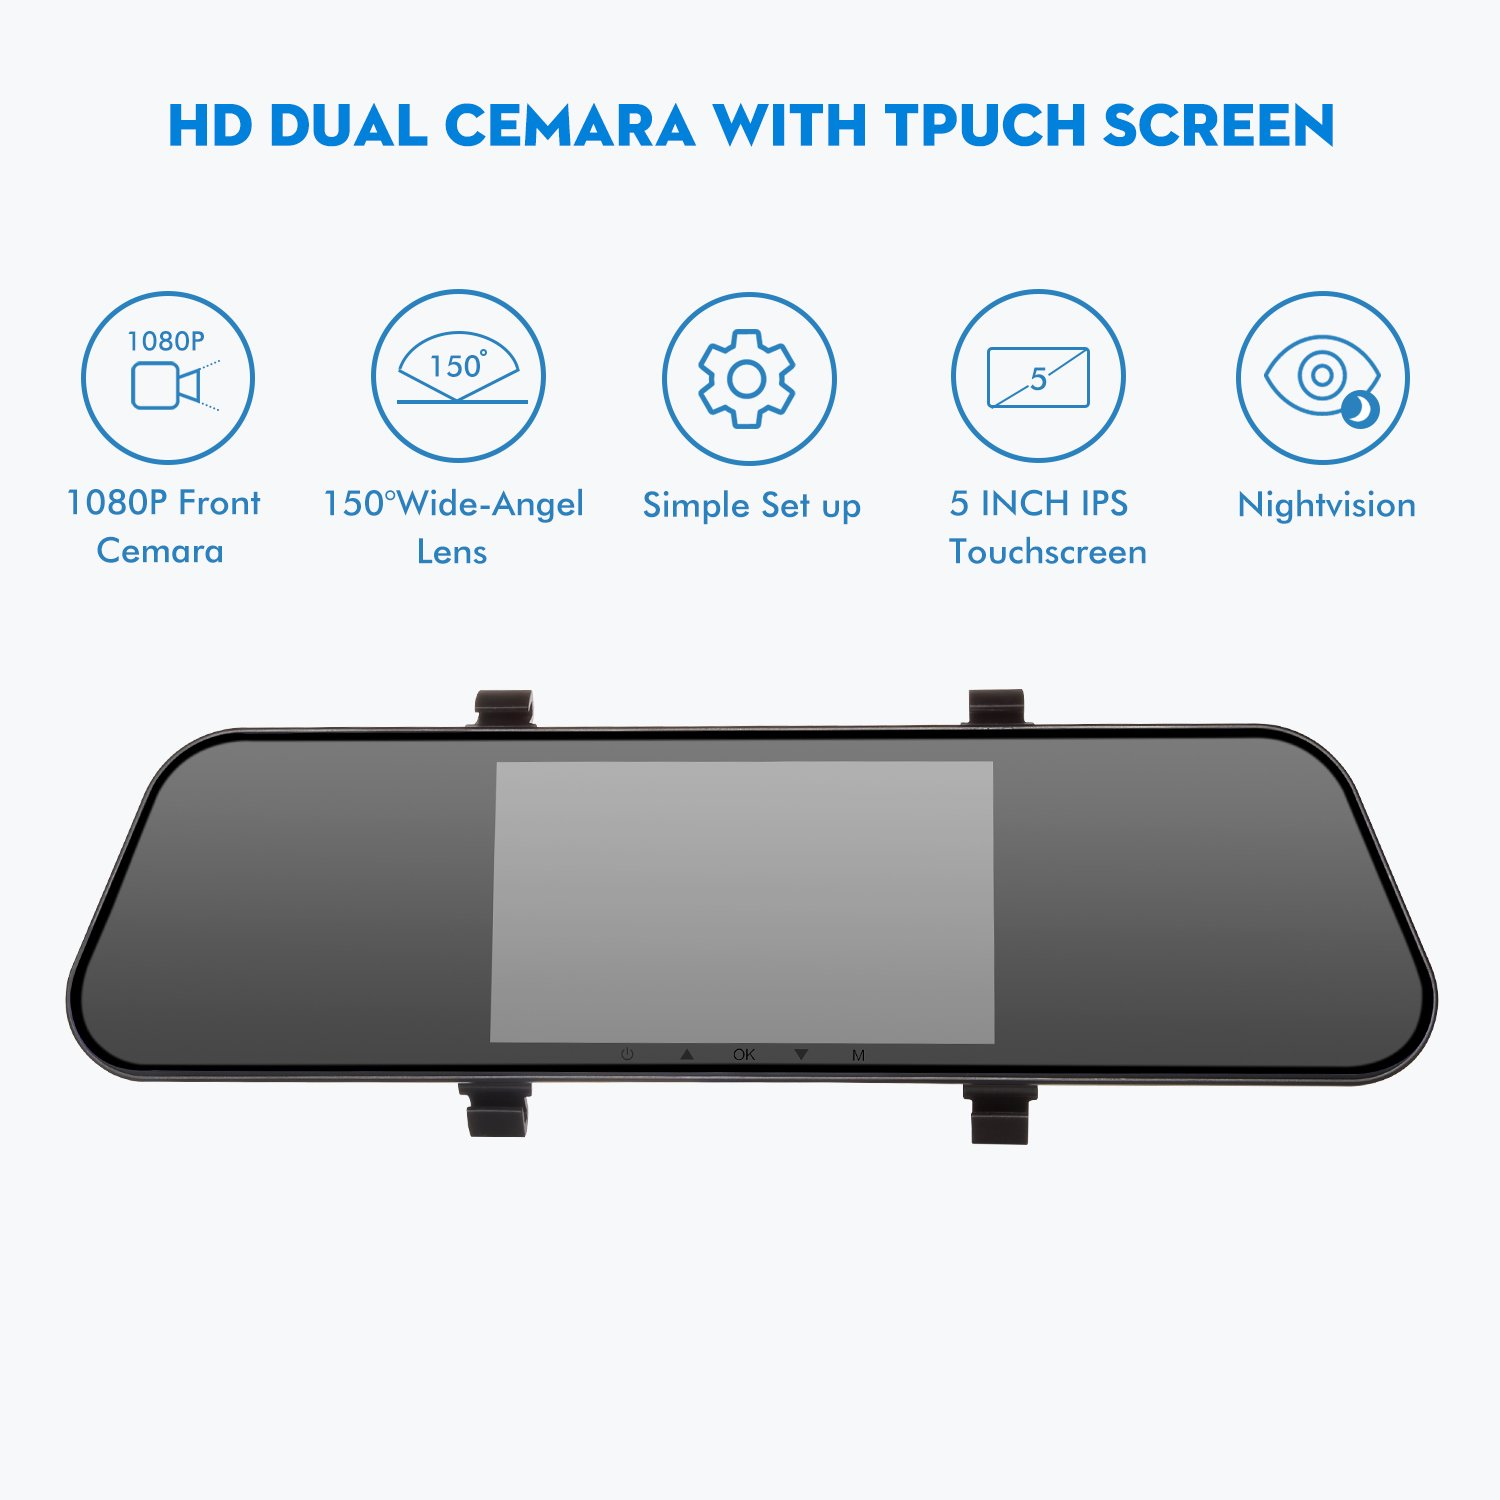 4-way Video Car Switch Parking Camera 4 View Image Split-screen Control Box Kits Elegant In Style Exterior Car Video